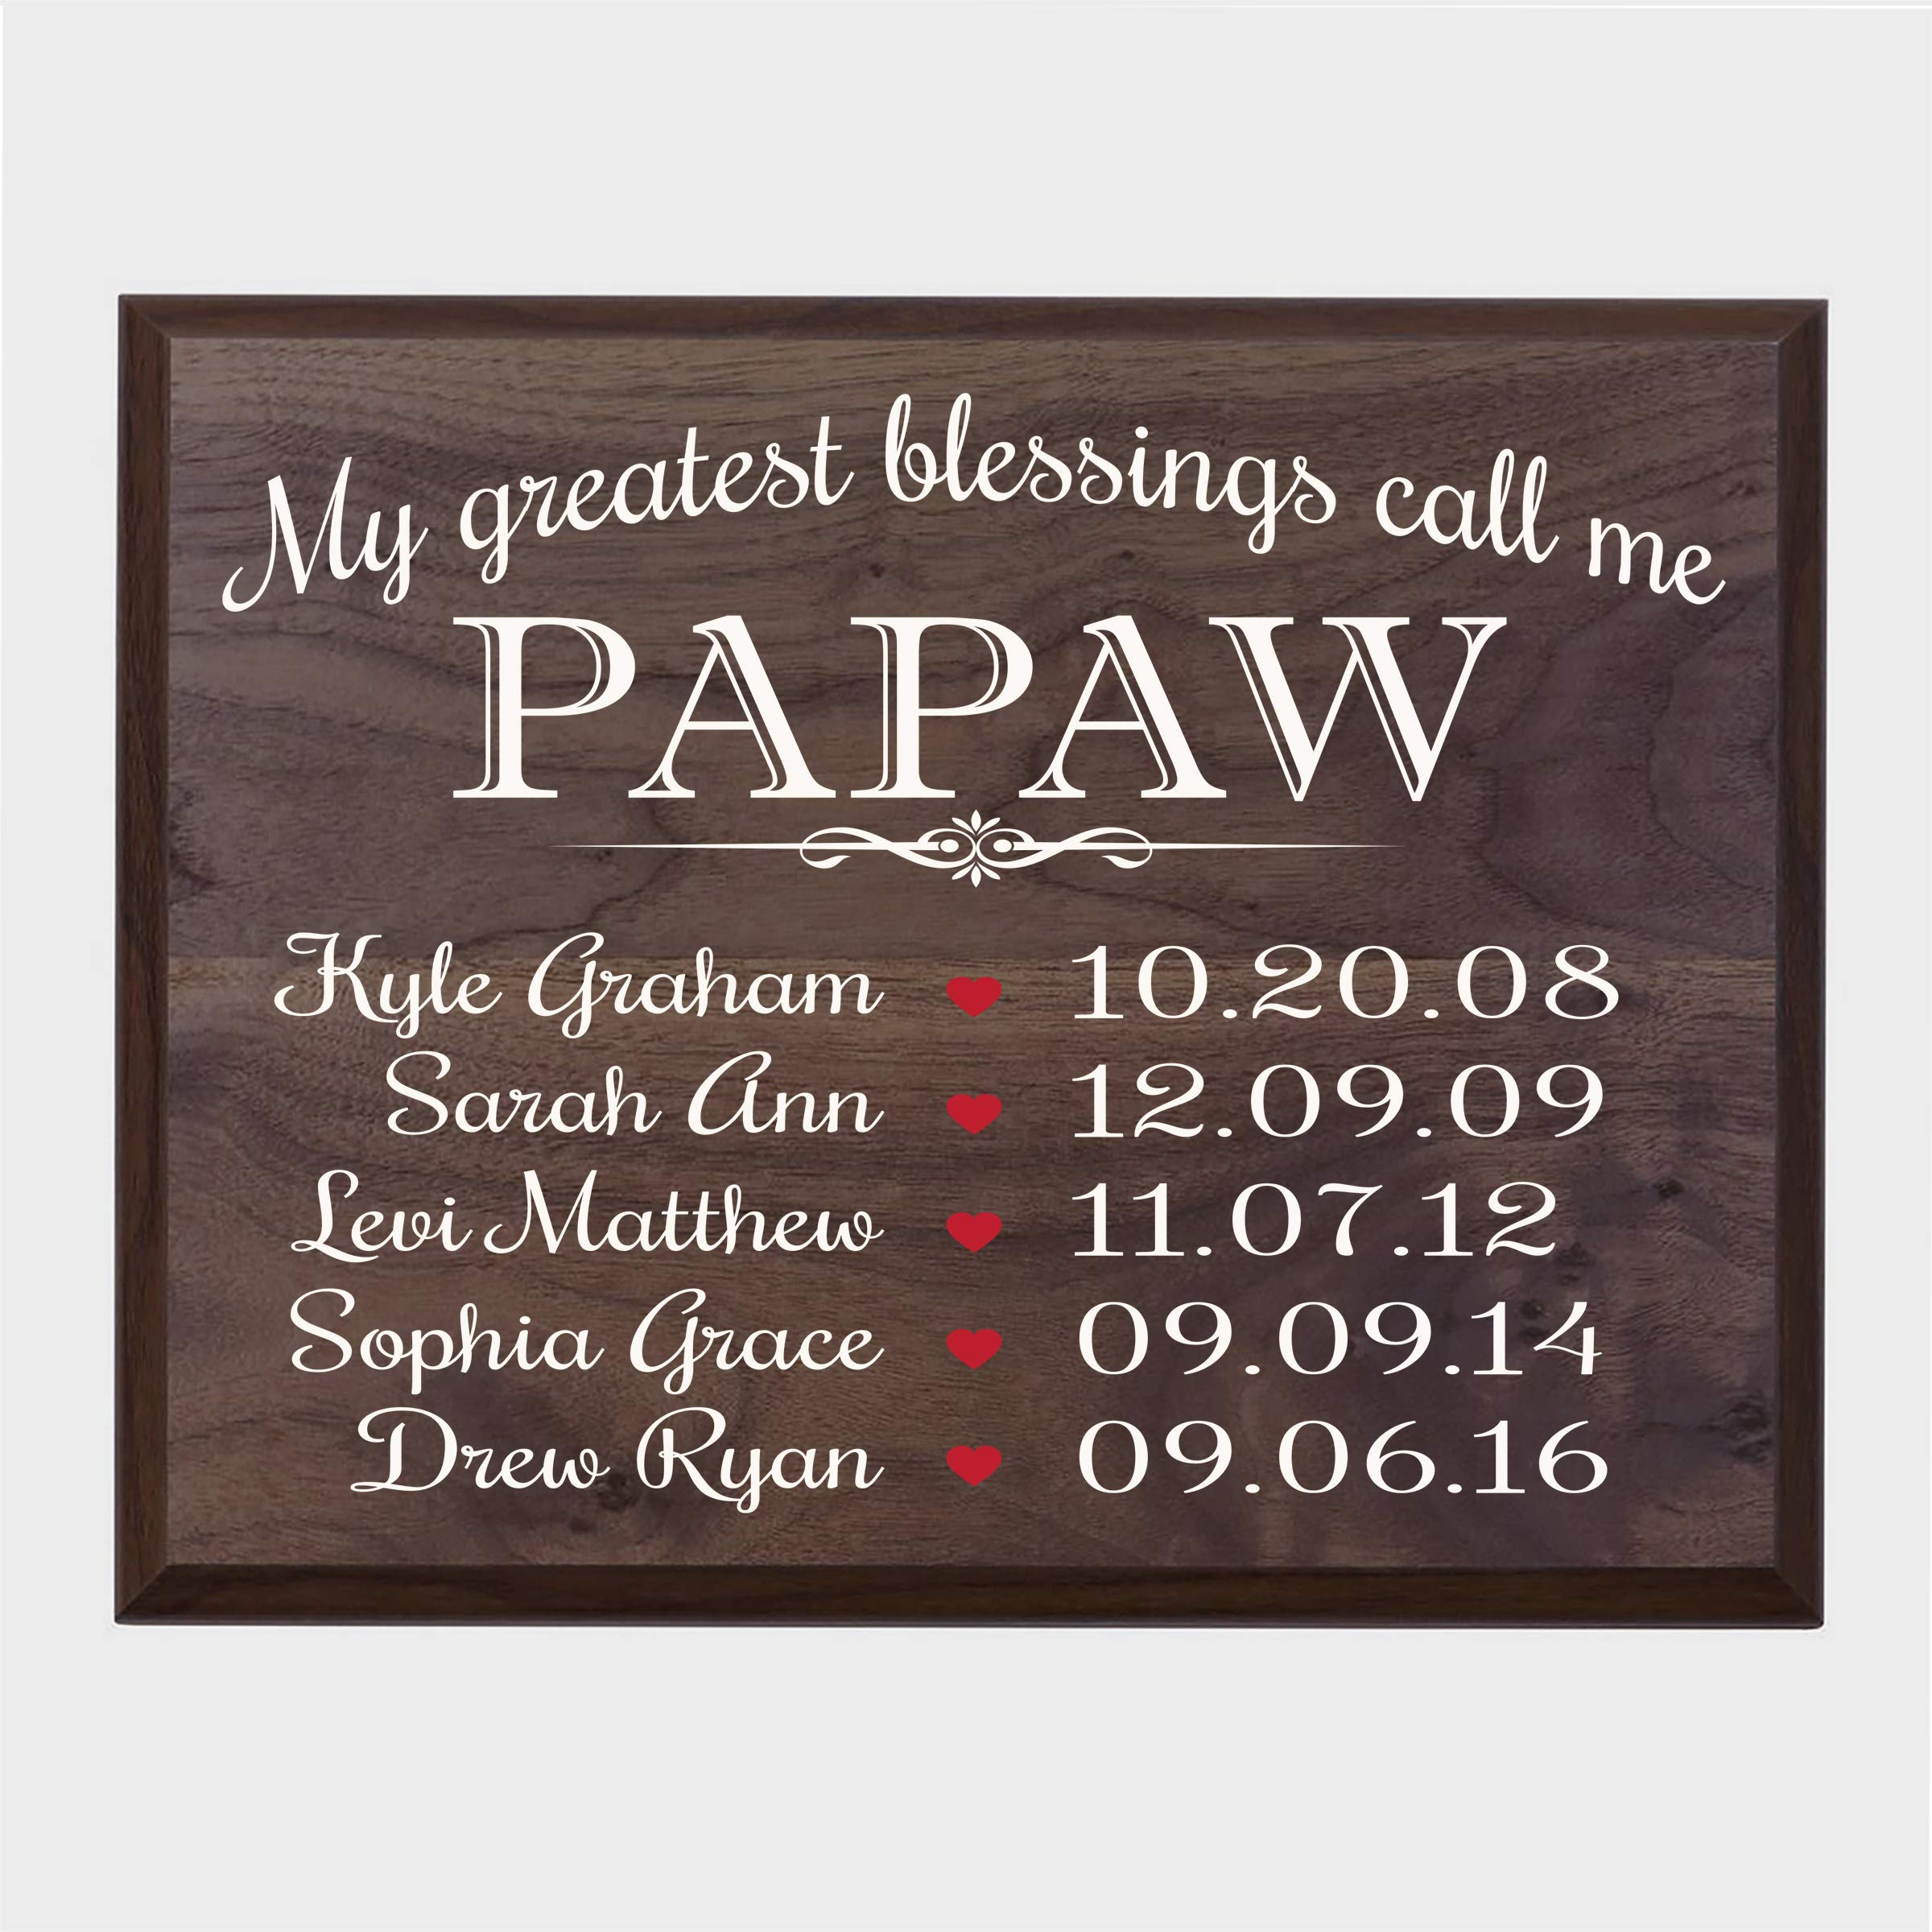 LifeSong Milestones Personalized Gifts for Papaw Wall Plaque Sign with Children's Names Birth Dates to Remember My Greatest Blessings Call me Papaw (Walnut) by LifeSong Milestones (Image #1)